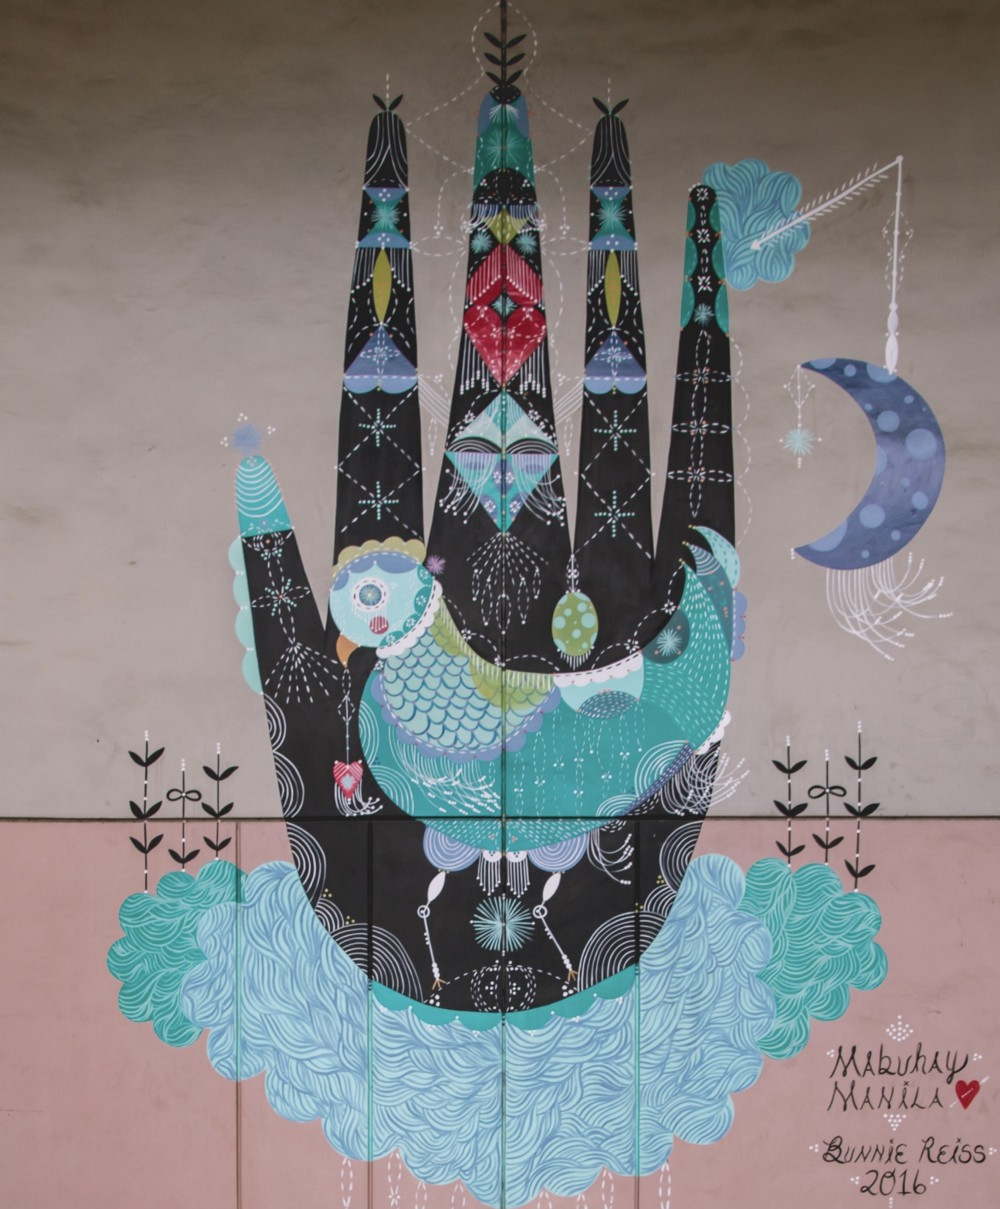 Elaborately decorated painting of. hand on a wall, with a moon to the right